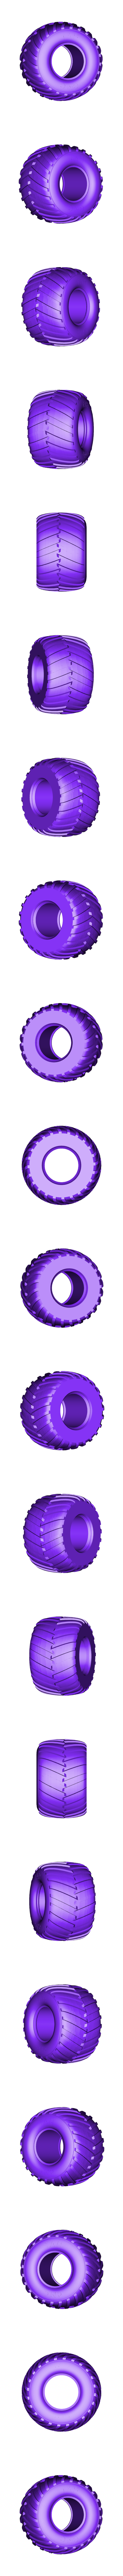 TireRight.STL Download free STL file Fully printable Monster Truck • 3D printer design, tahustvedt